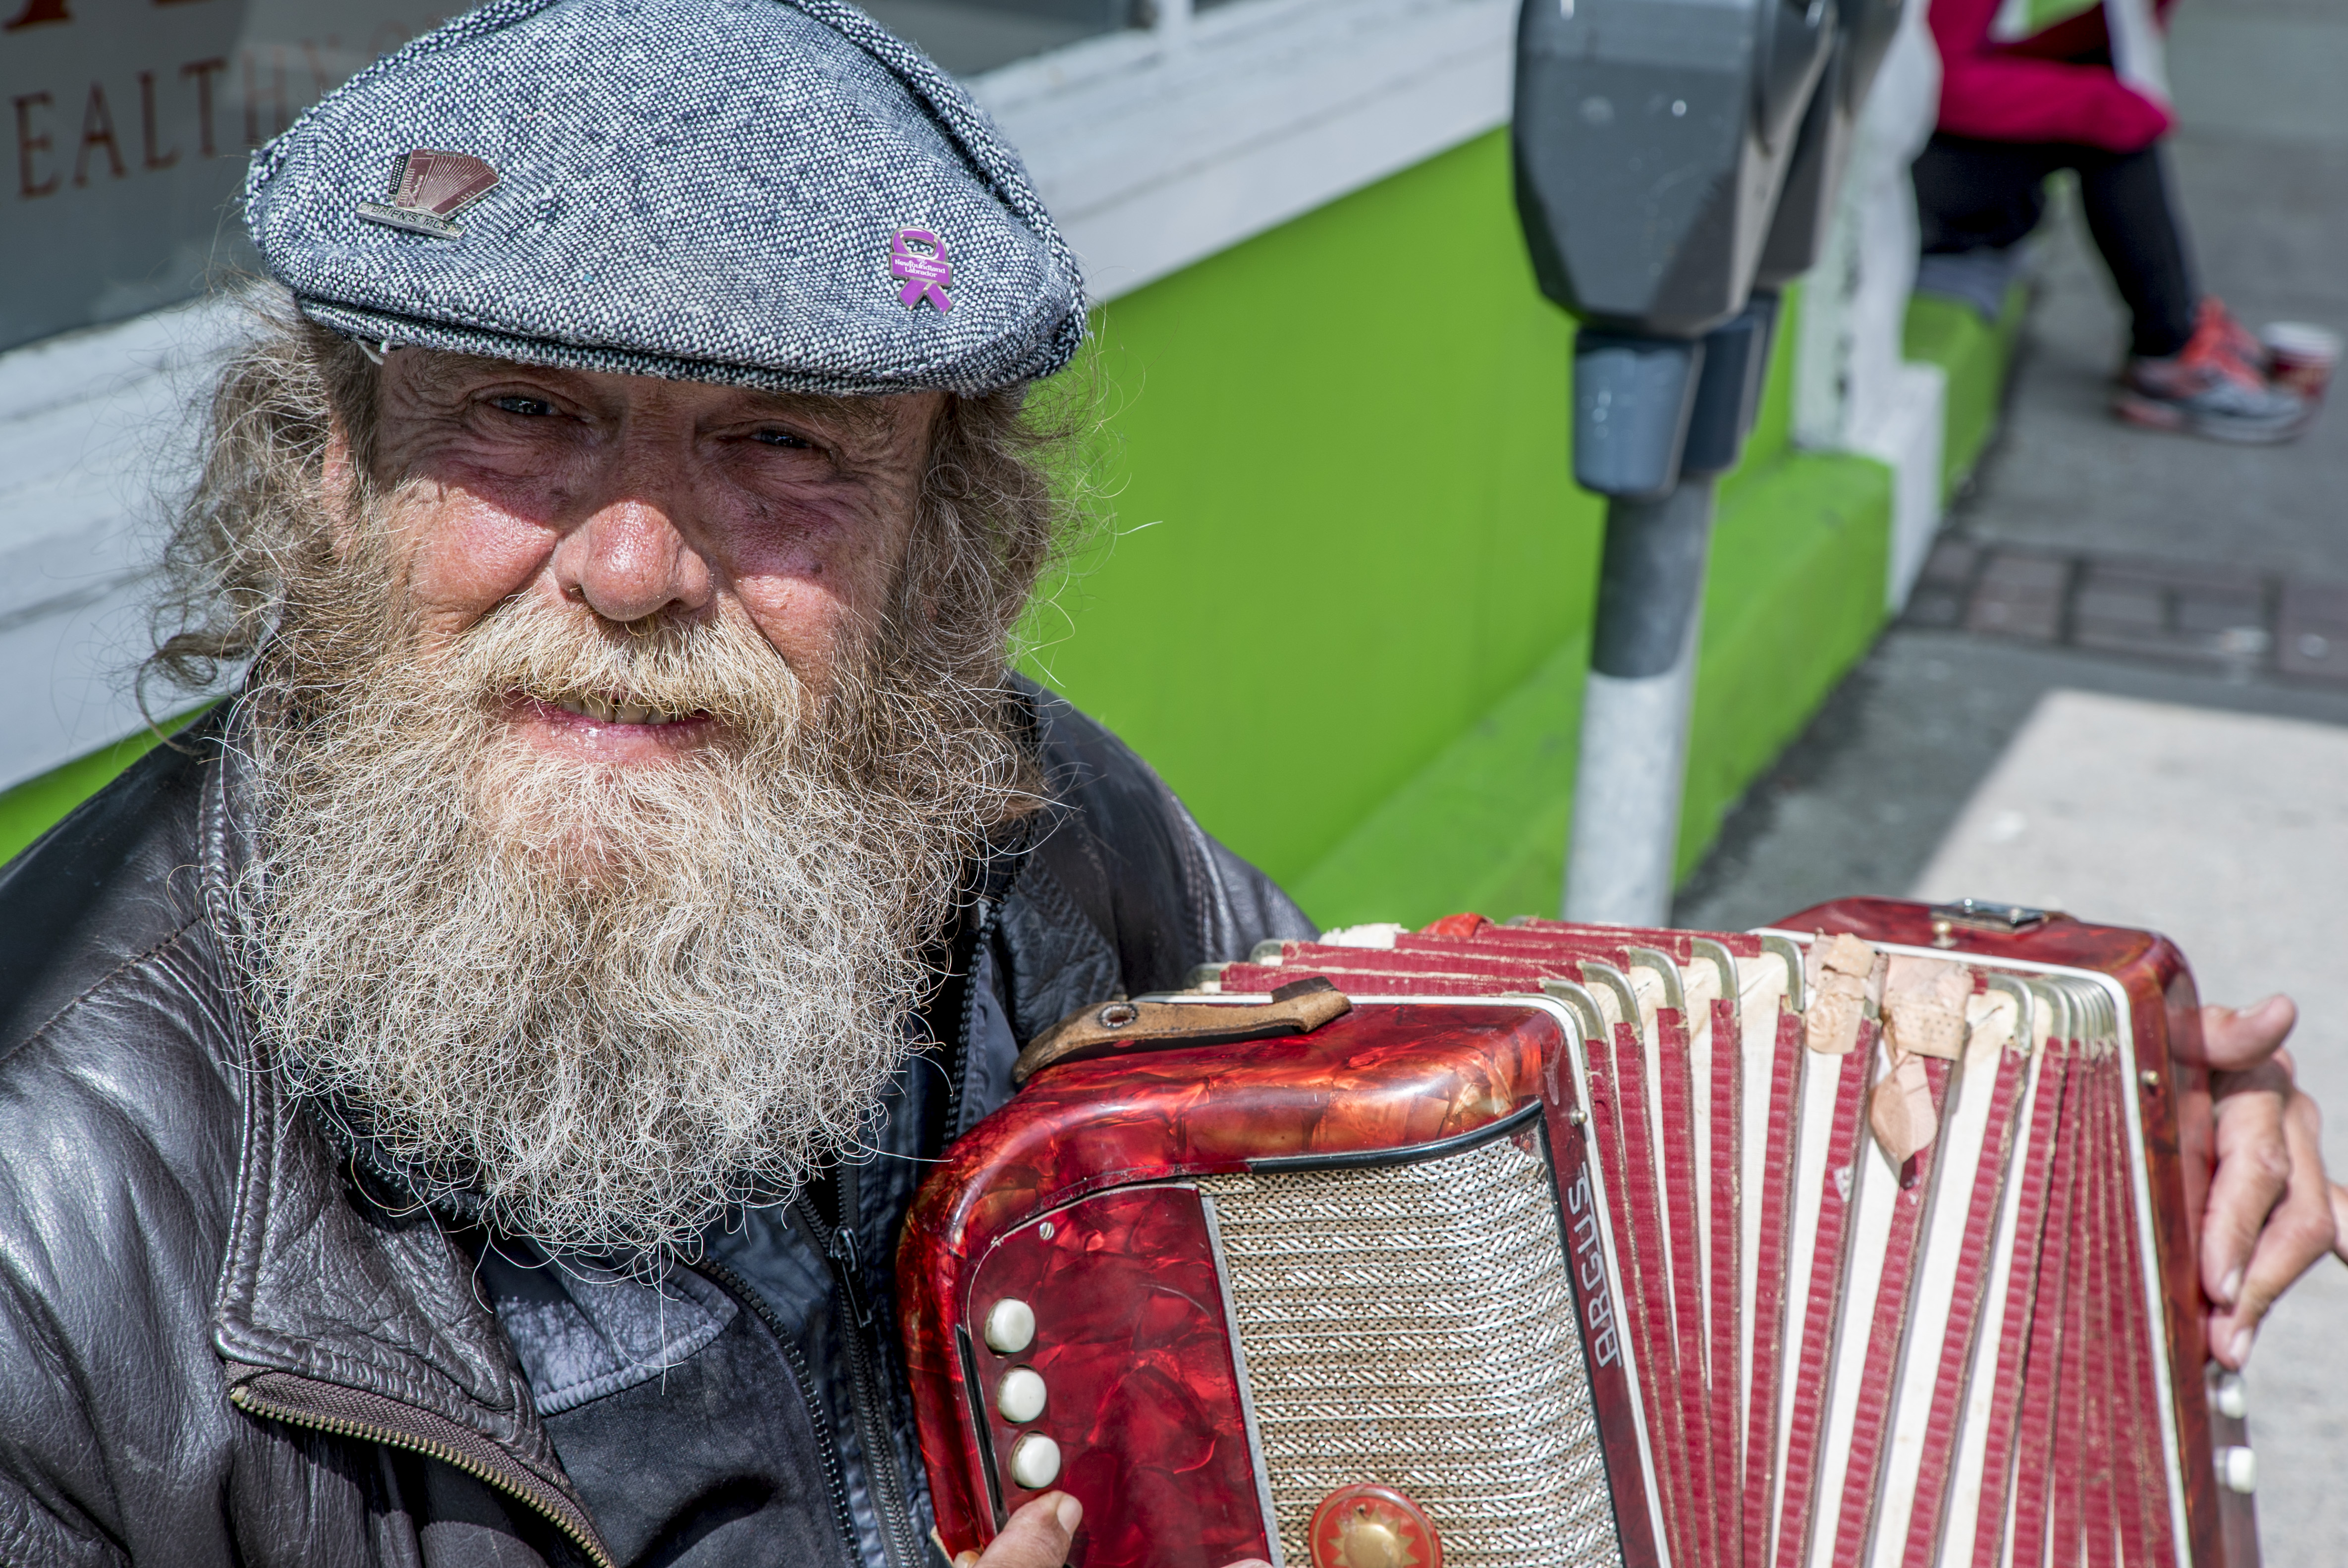 St. John's Man Plays Accordion